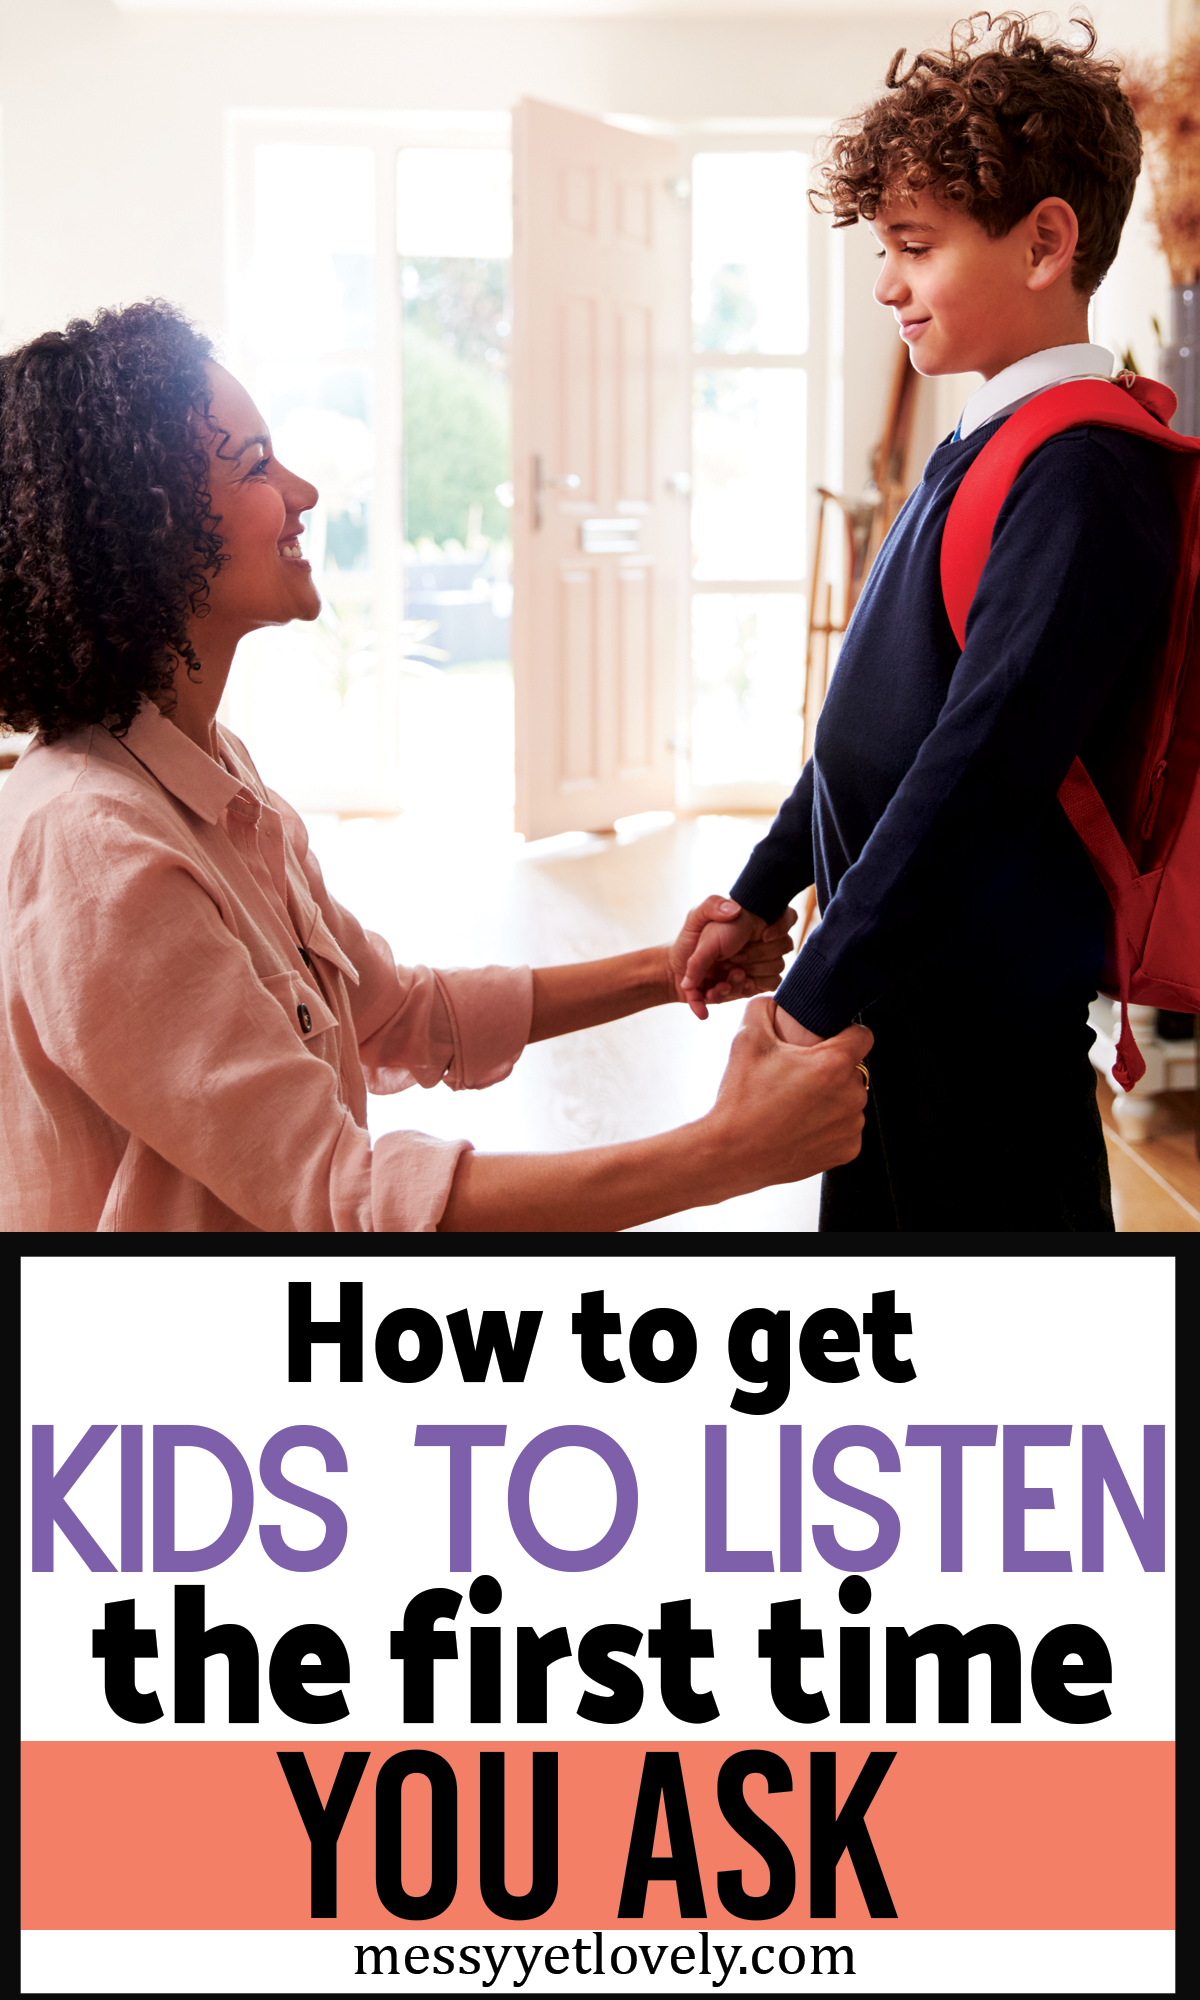 11 Easy Ways To Get Kids To Listen Without Yelling Or